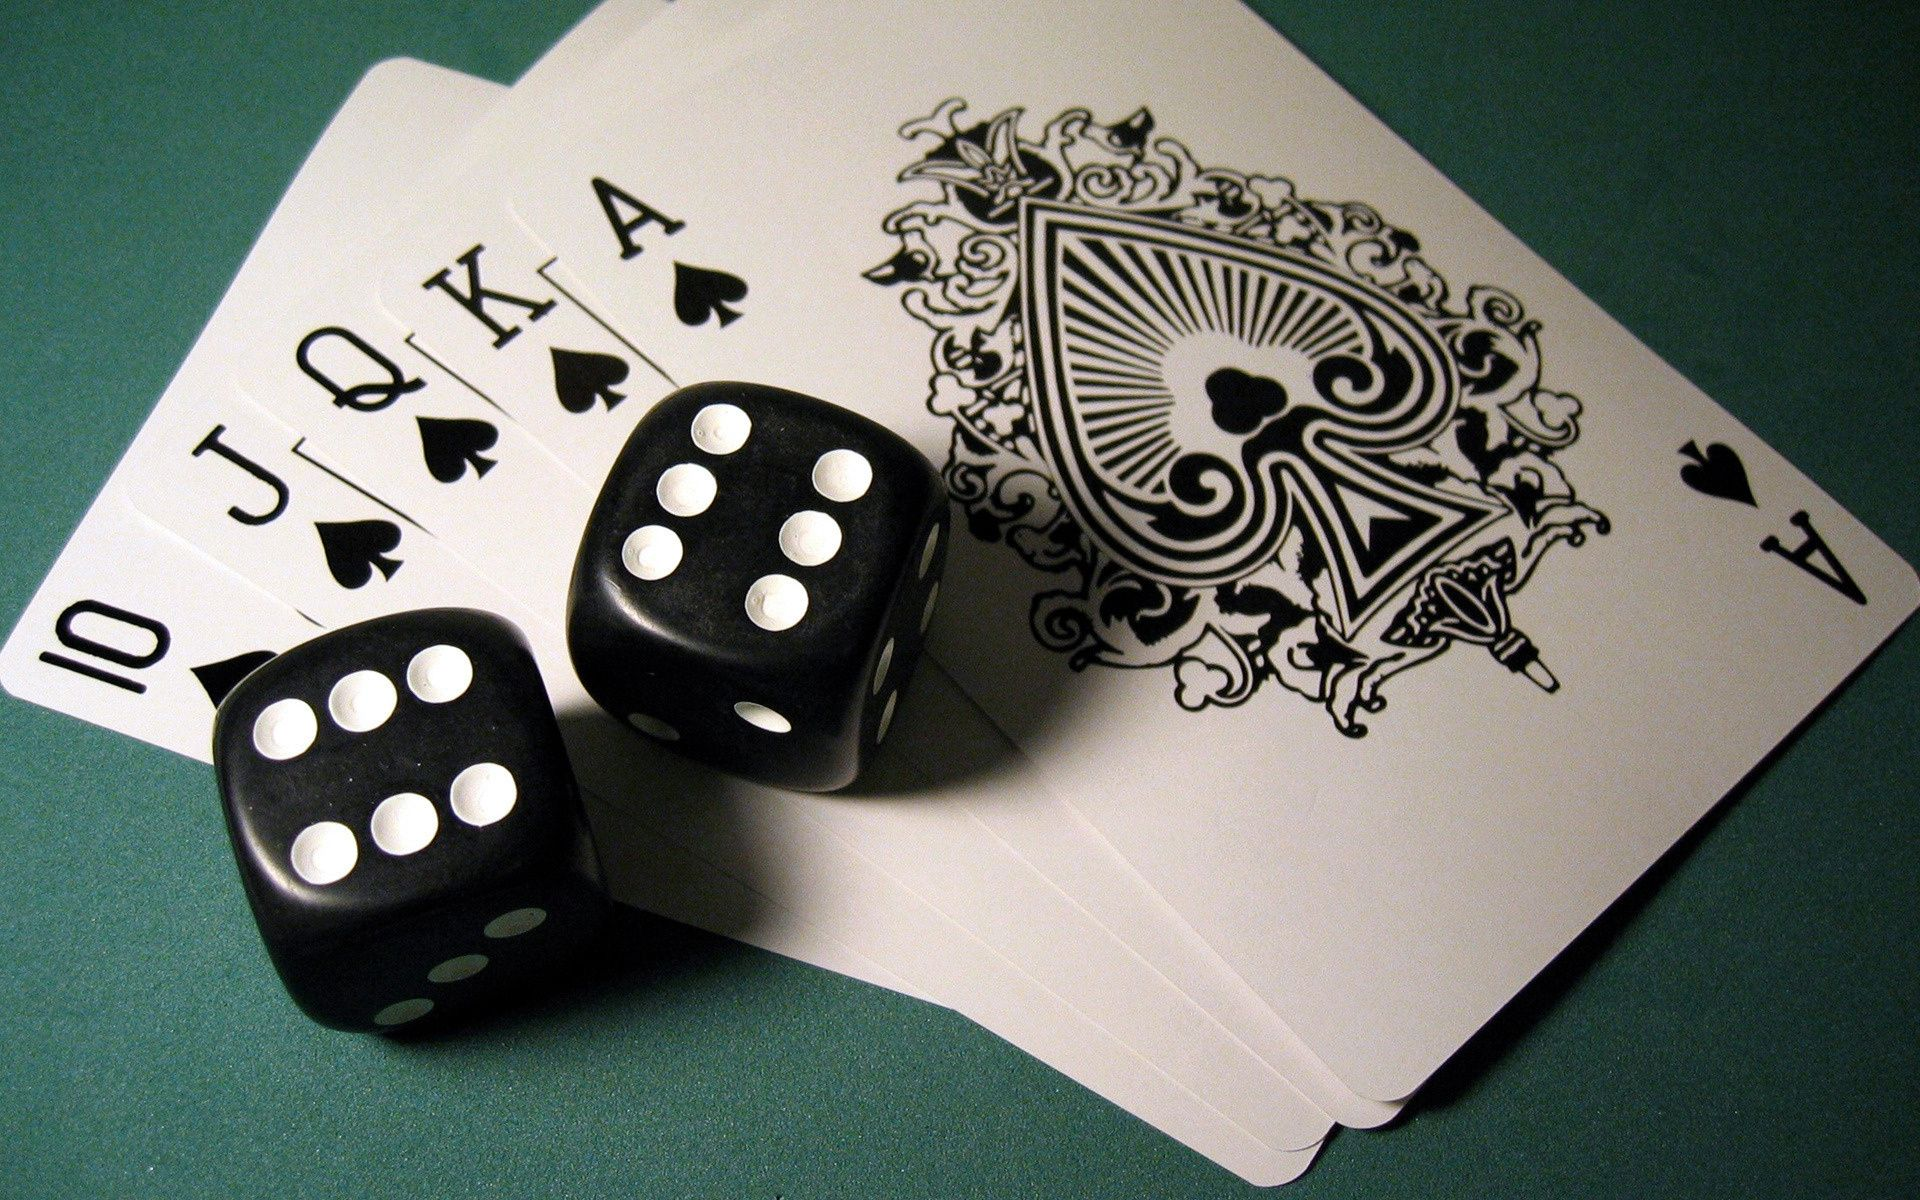 Simple Methods The Professionals Use To Advertise Gambling